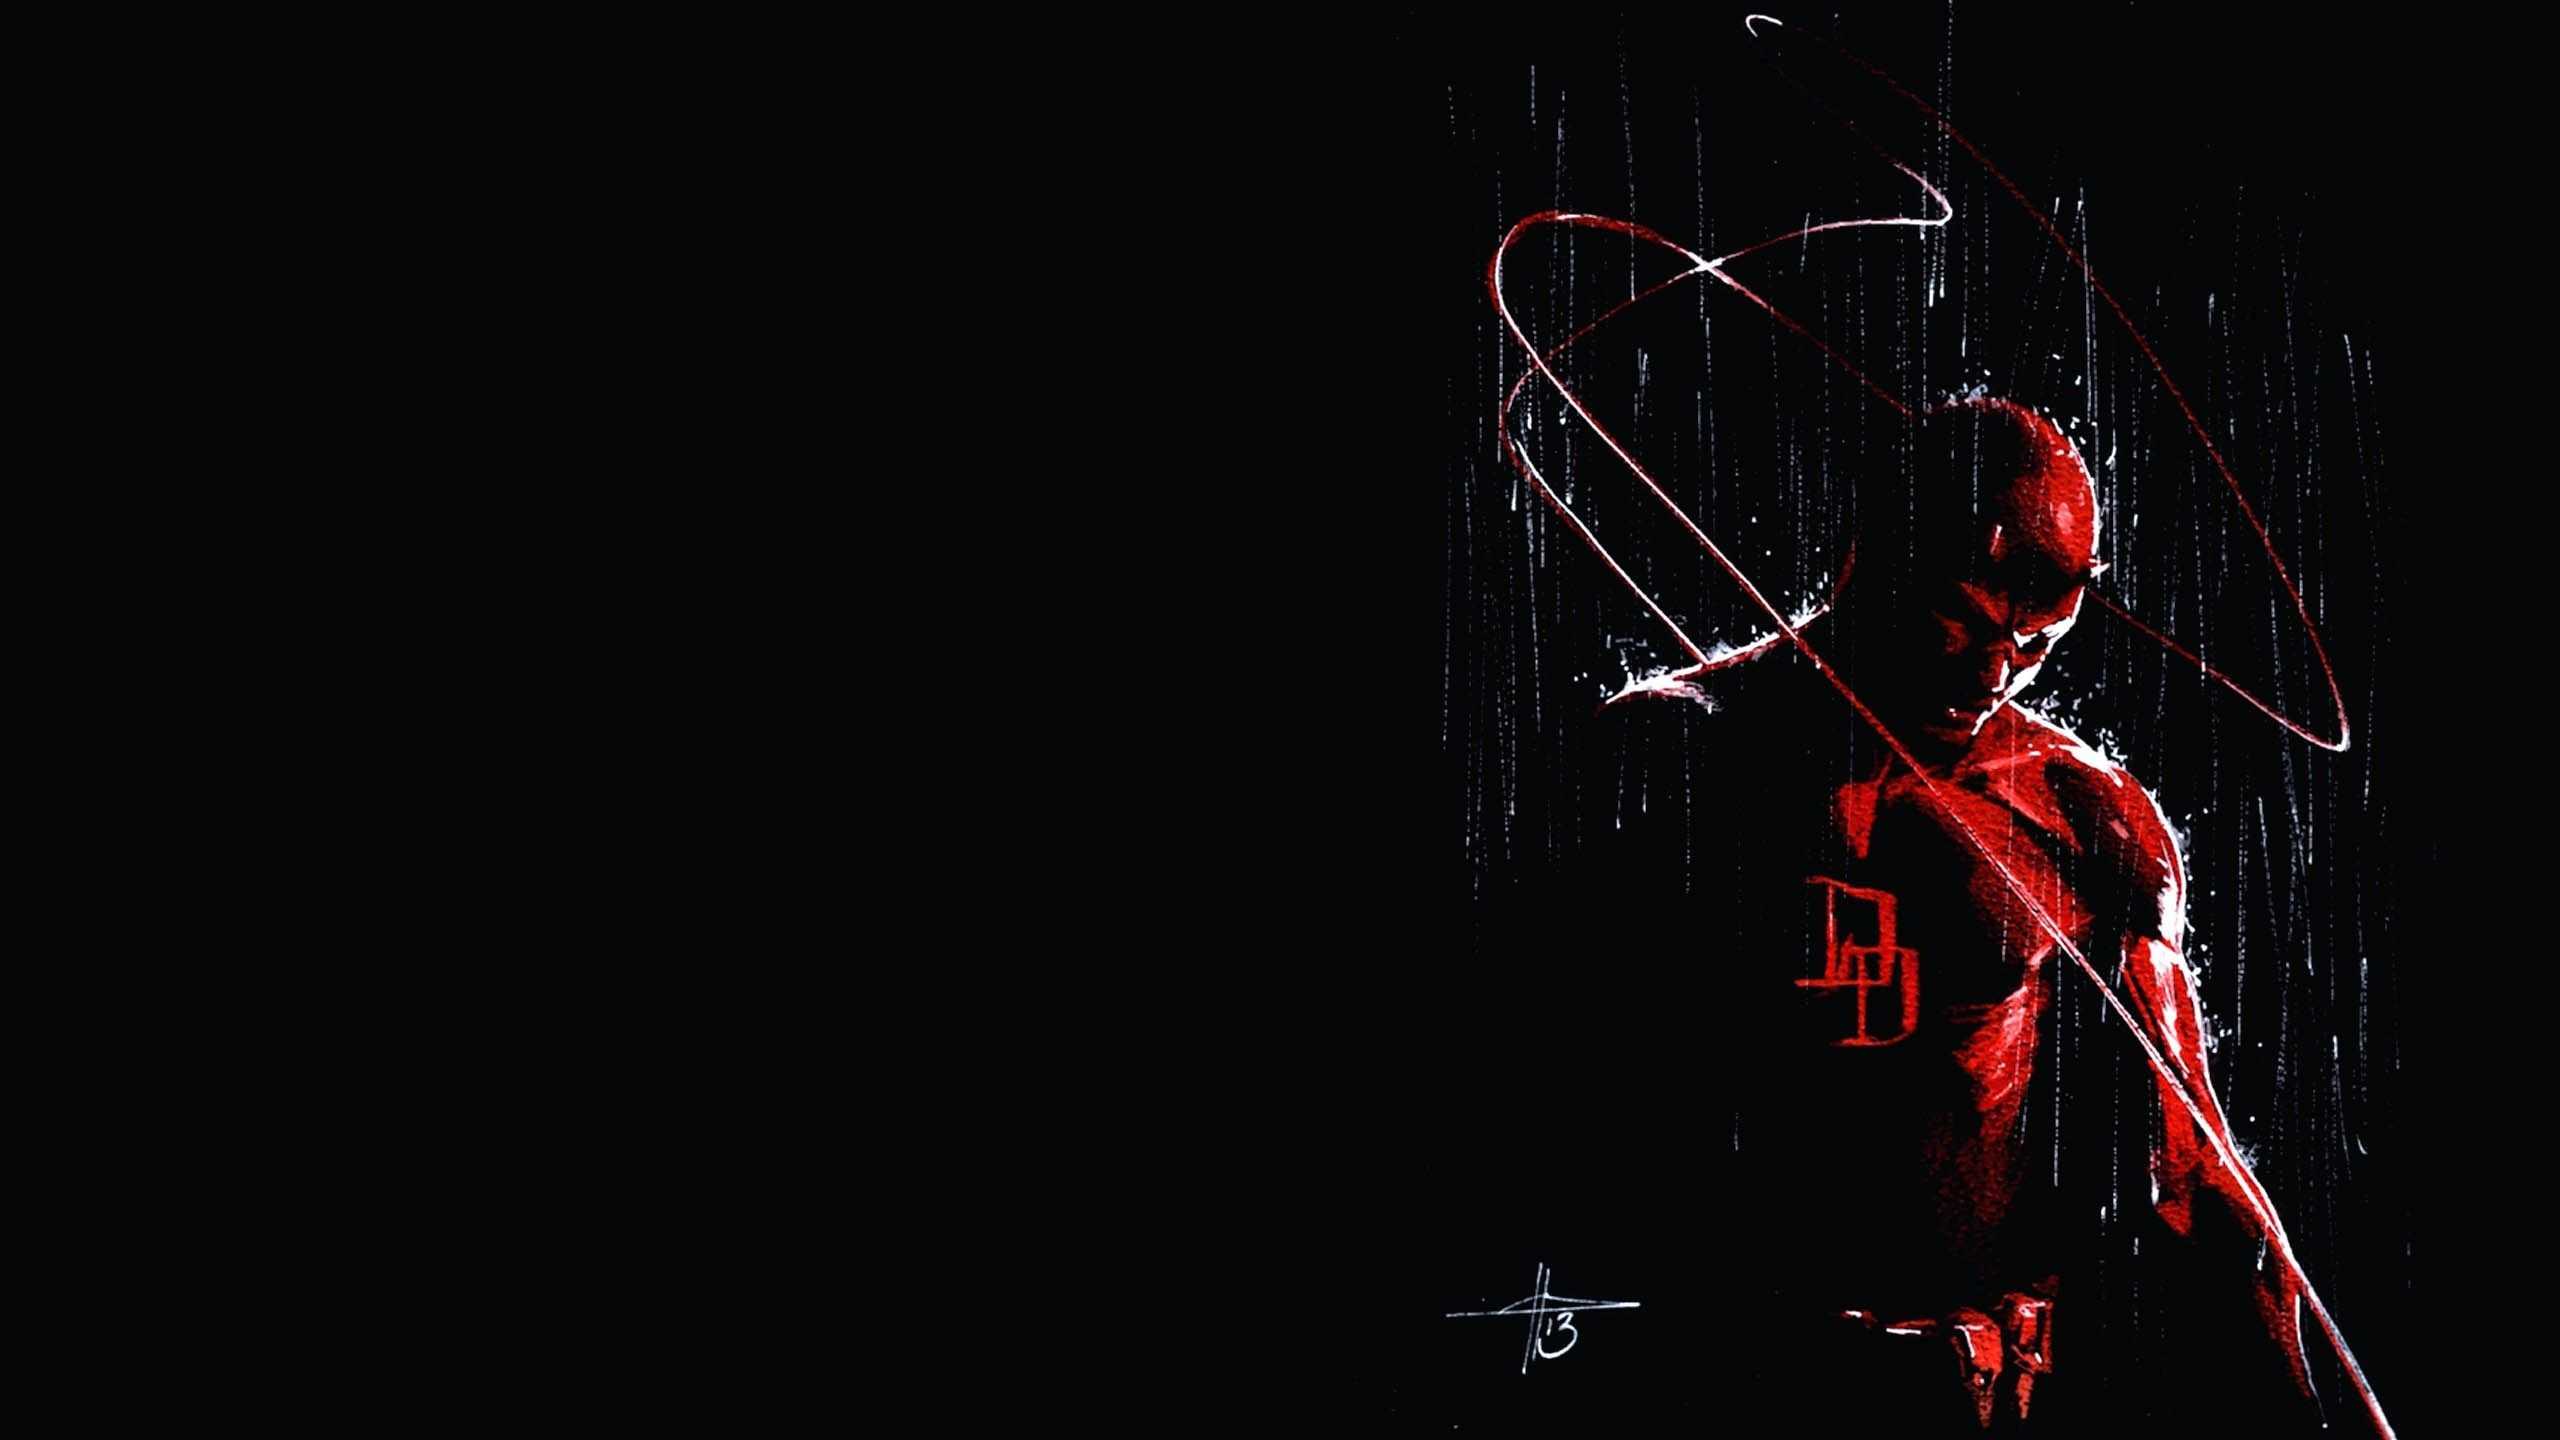 Res: 2560x1440, free download daredevil netflix costume wallpapers